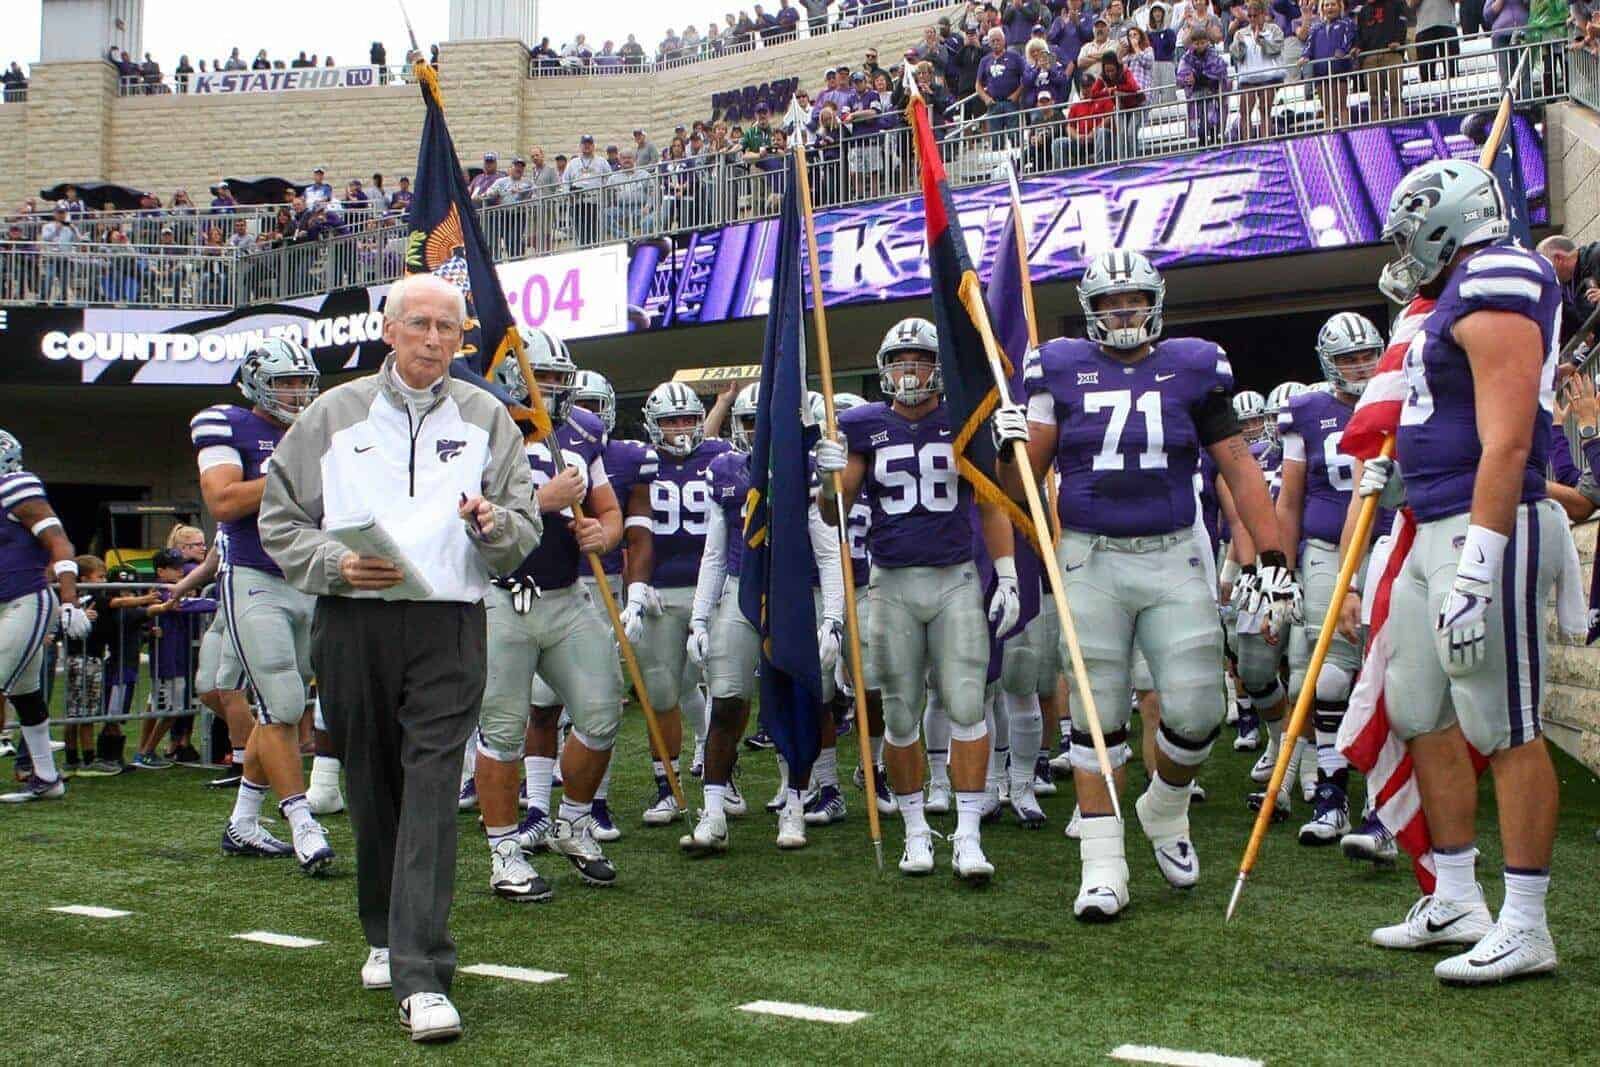 College Football Schedule: K-State